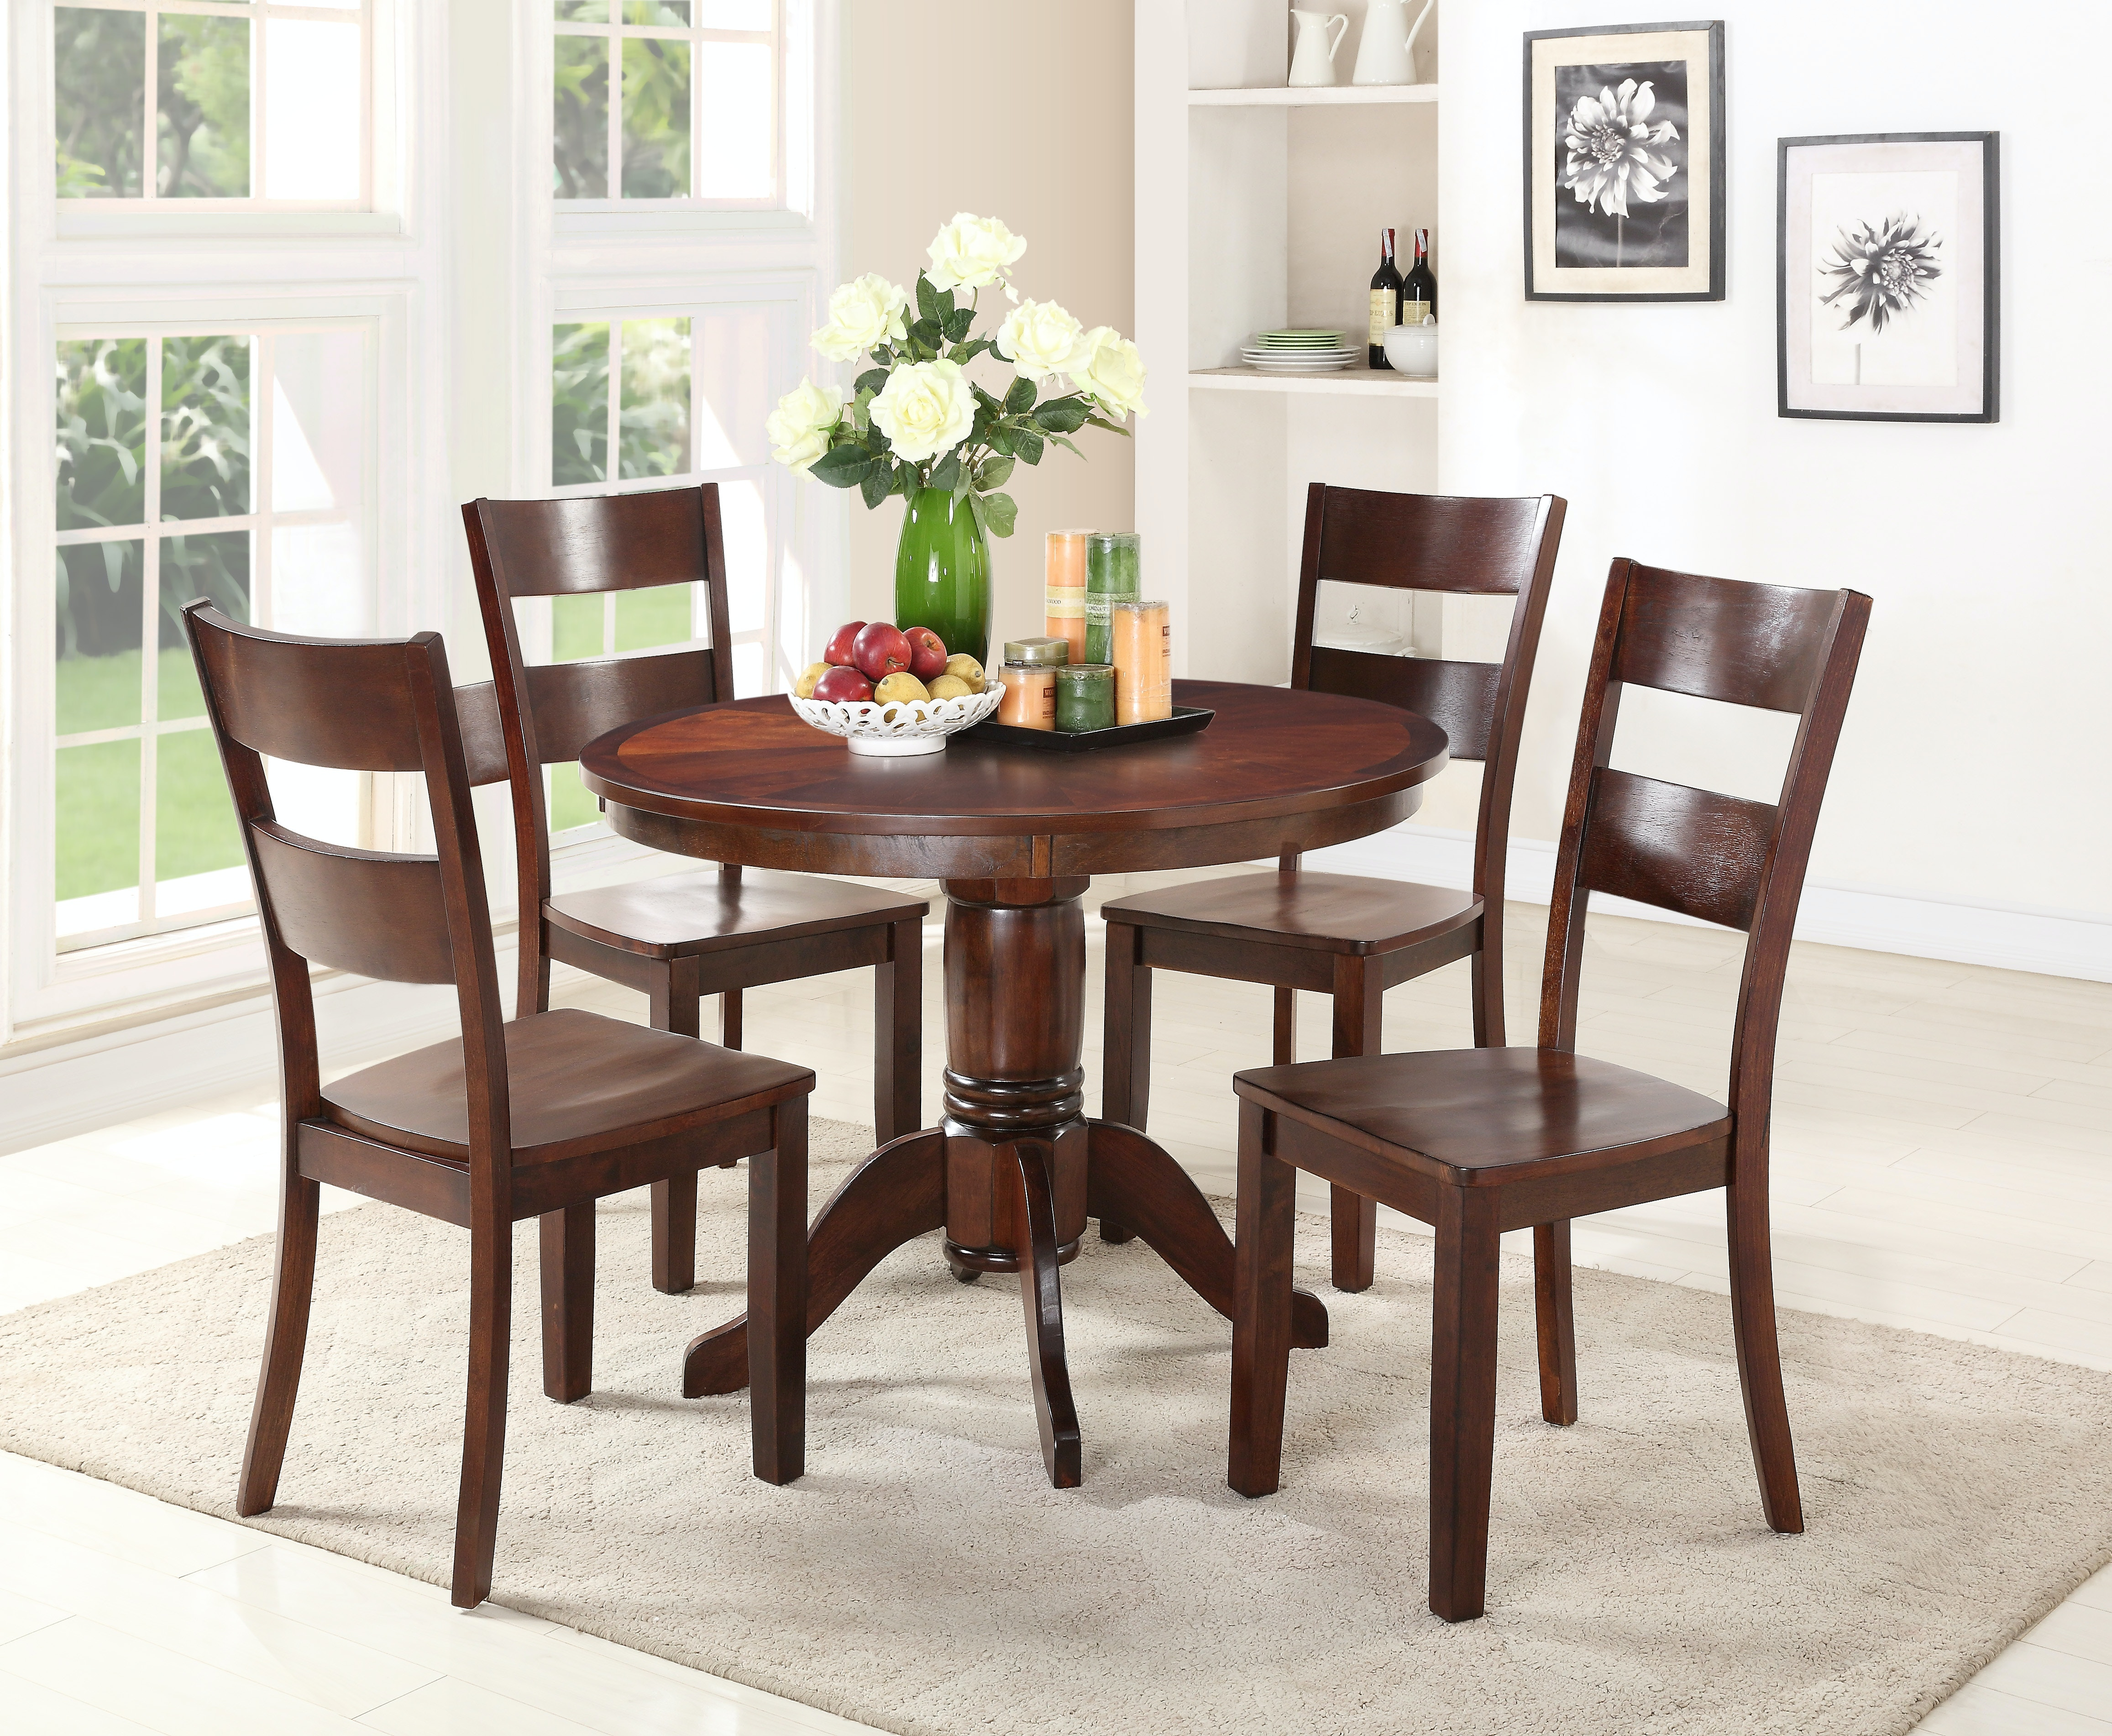 Madera 5-Piece Dining includes Round Table \u0026 4 Side Chairs - ESPRESSO & Dining Room Dining Room Sets - Star Furniture TX - Houston Texas